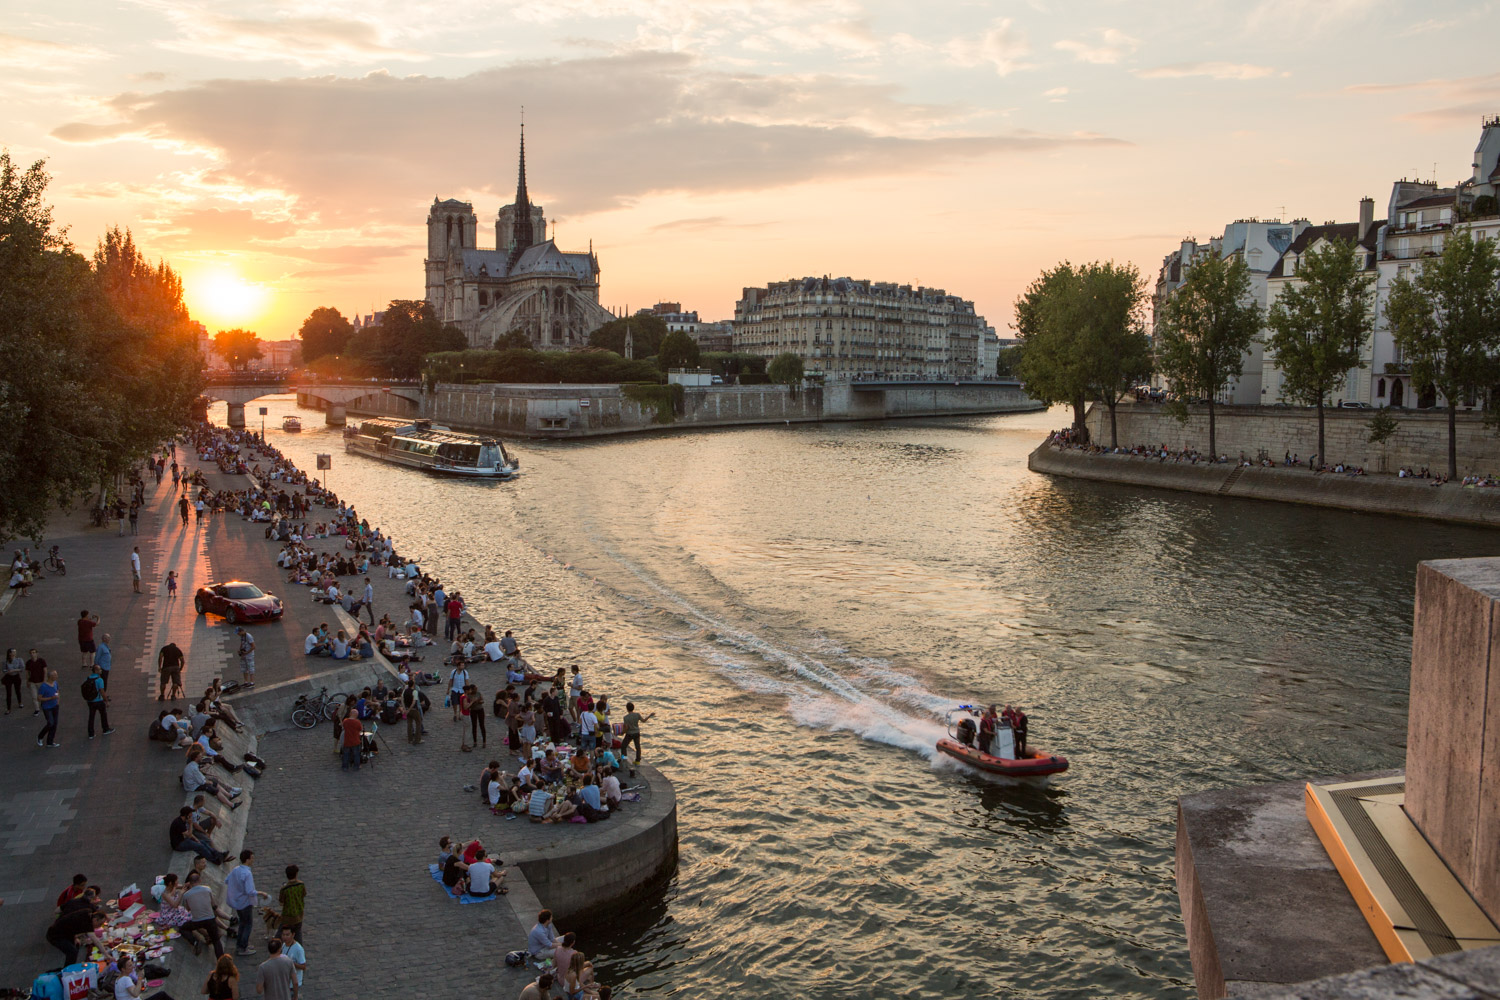 A small speedboat navigates the Seine River in Paris, France. Parisians and tourists line the riverbanks as the sun sets behind the Notre Dame Cathedral.